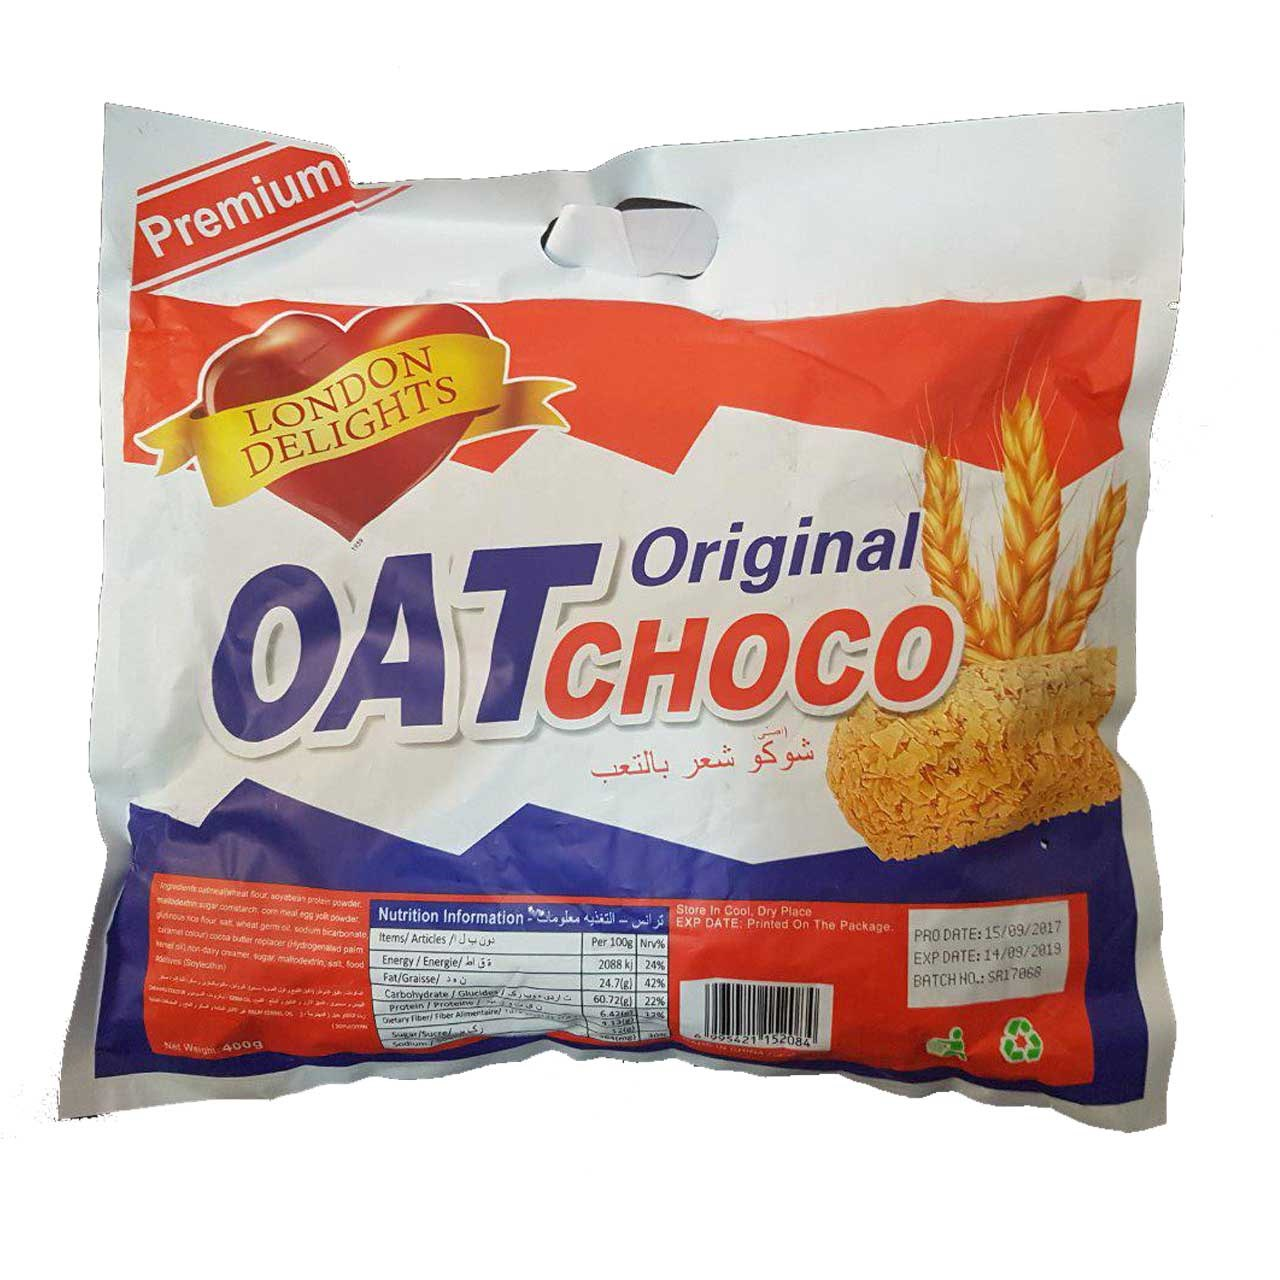 تصویر ساشه غلات Oat Choco مدل Original Oat Choco Chocolate Single Serving